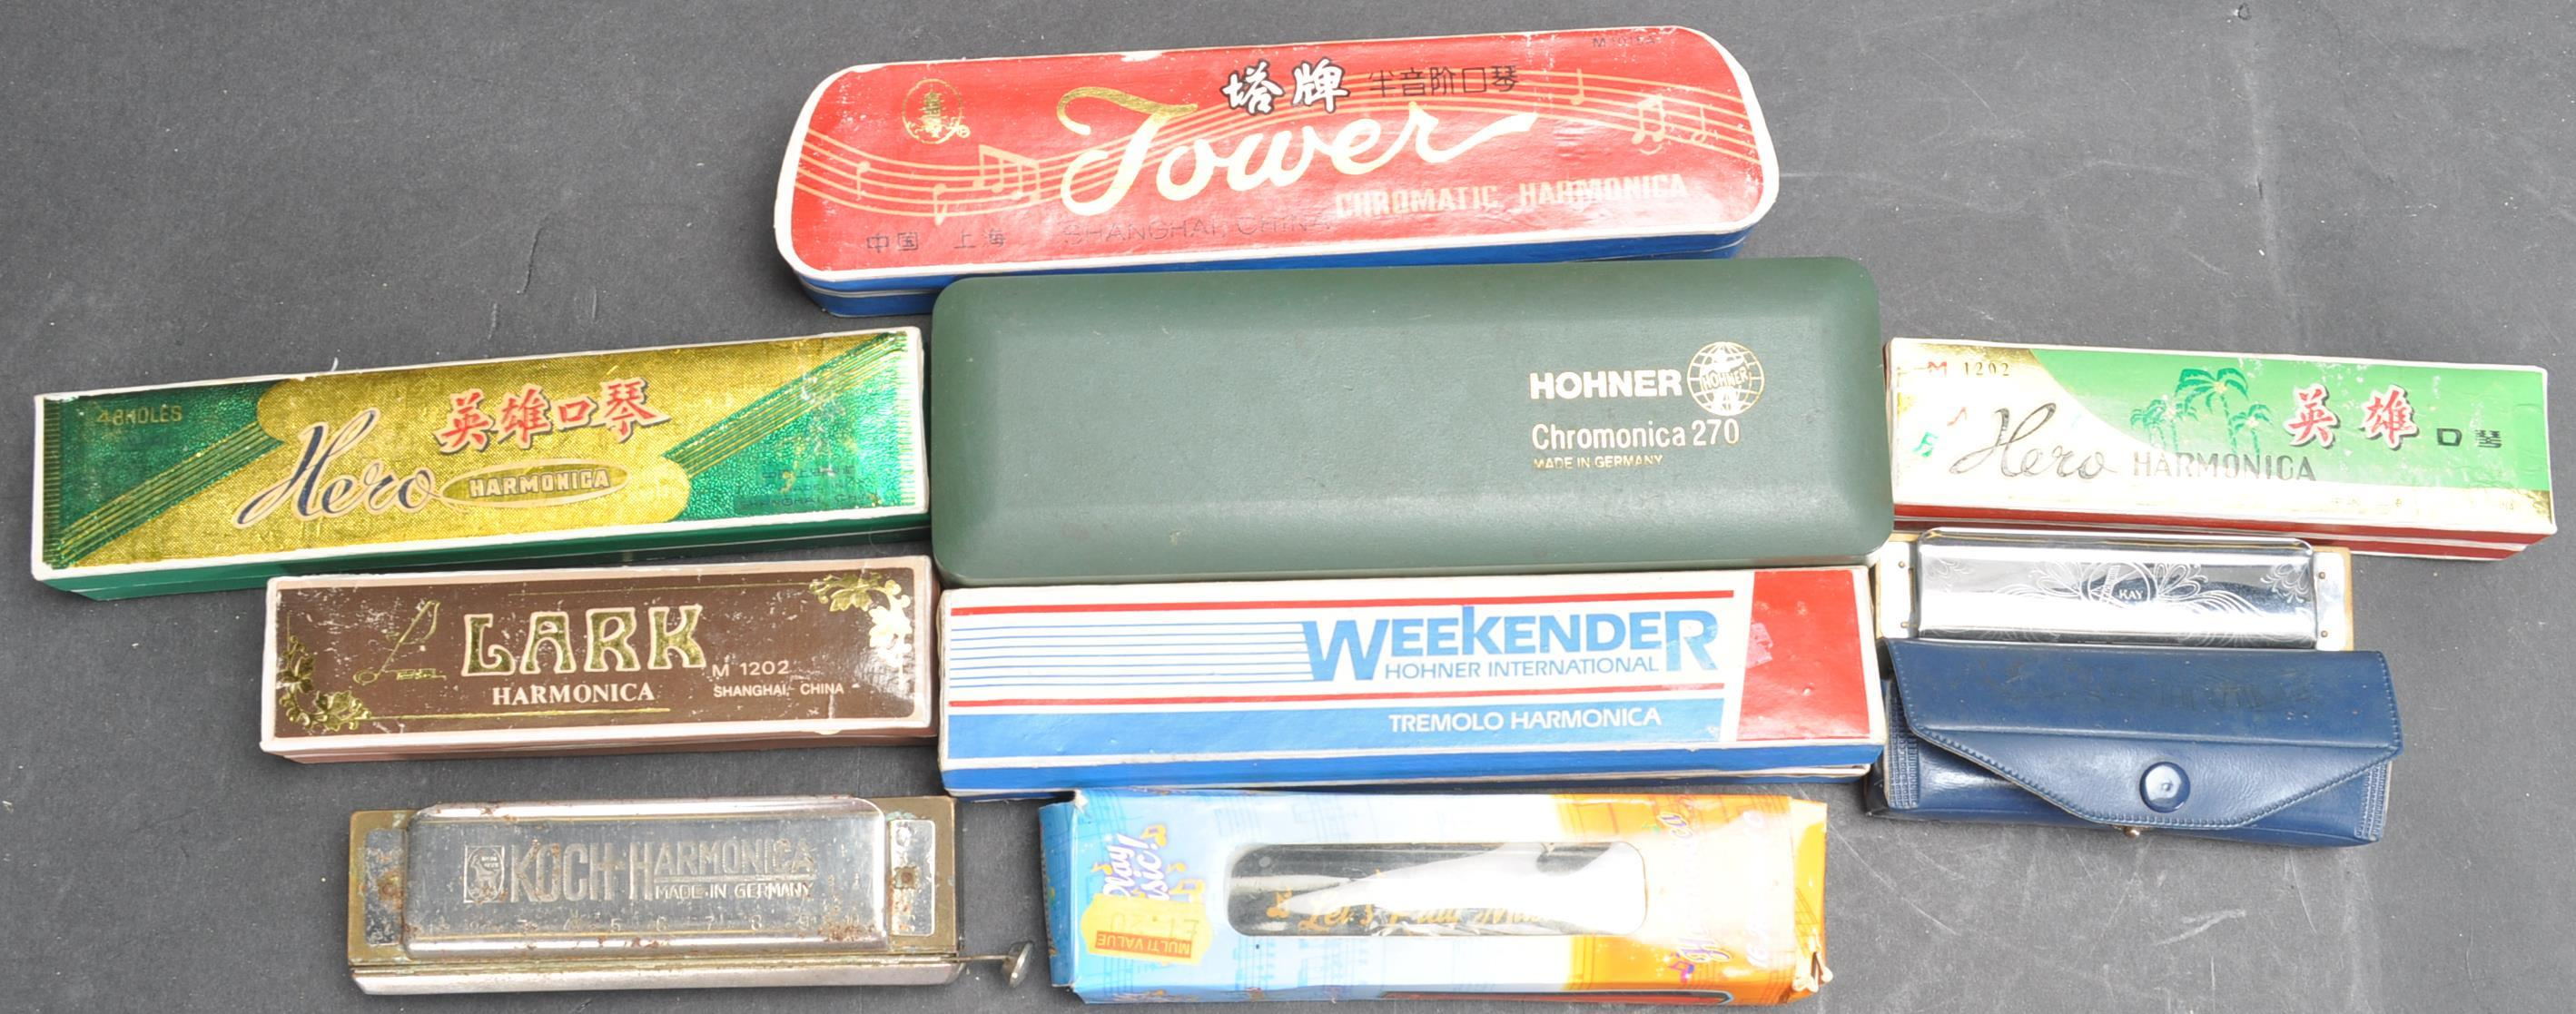 COLLECTION OF VINTAGE MOUTH ORGANS / HARMONICAS - Image 7 of 7